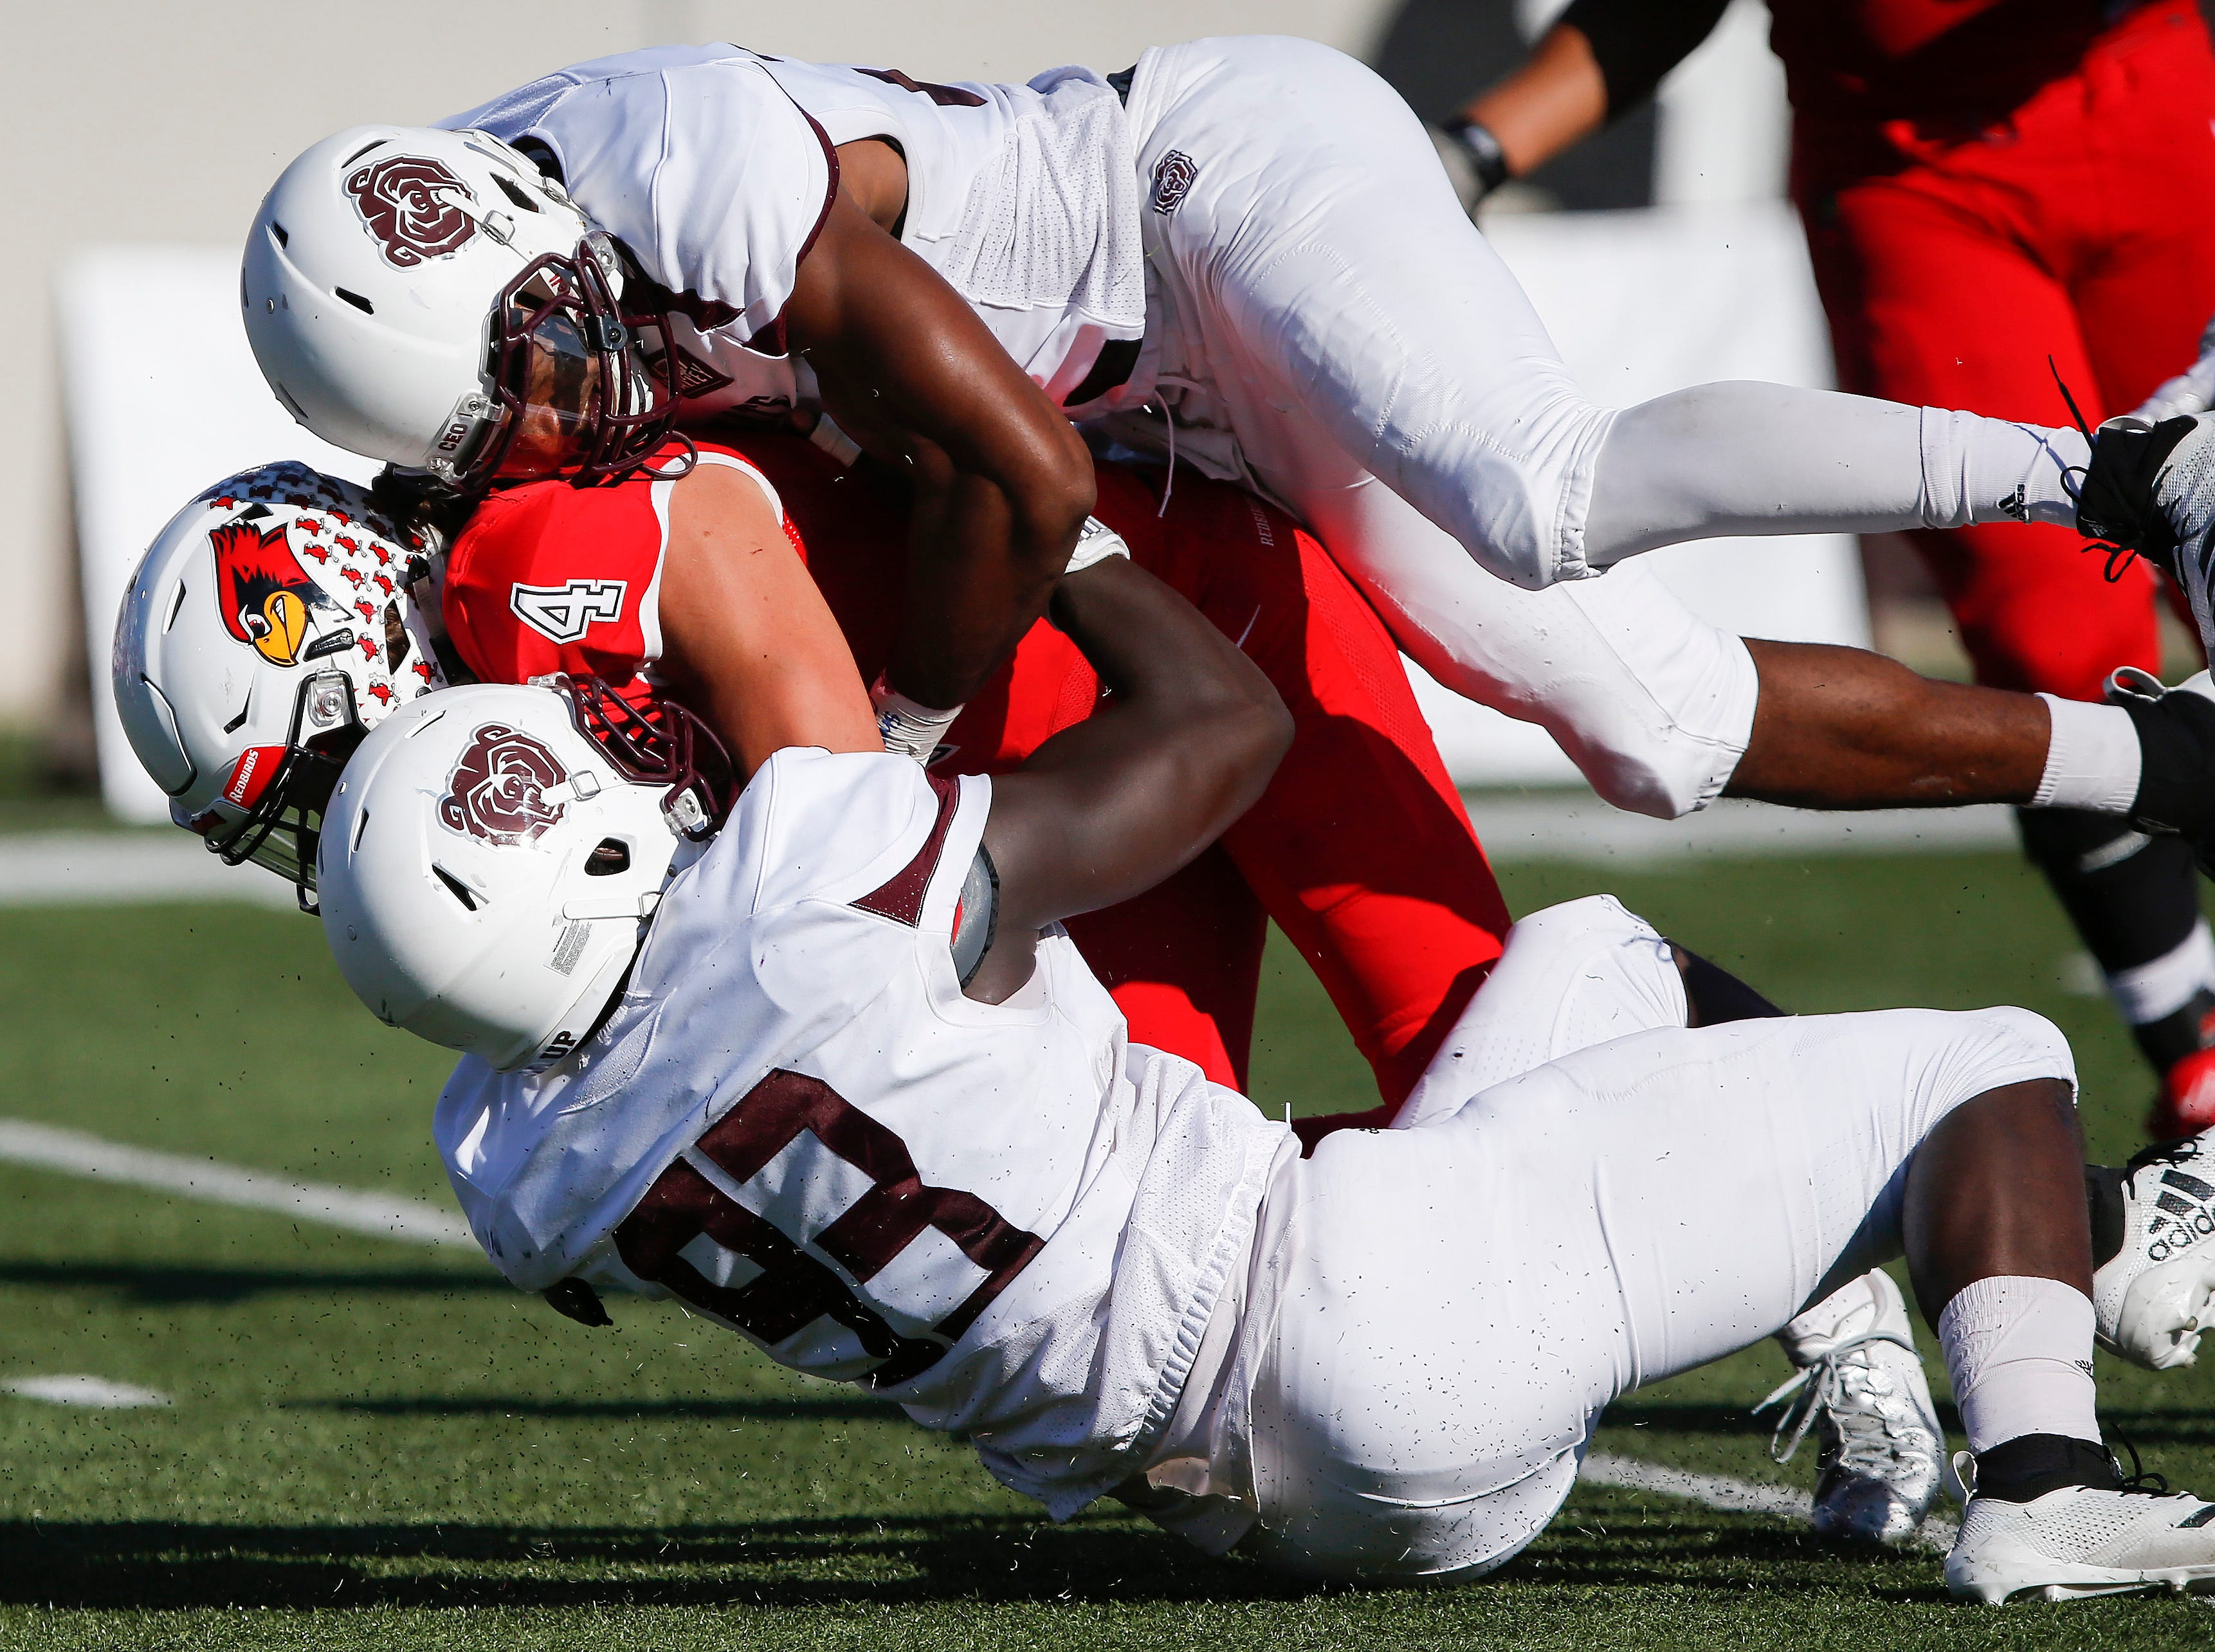 The Missouri State Bears defeated the Illinois State Redbirds 24-21 at Plaster Stadium on Saturday, Sept. 29, 2018.